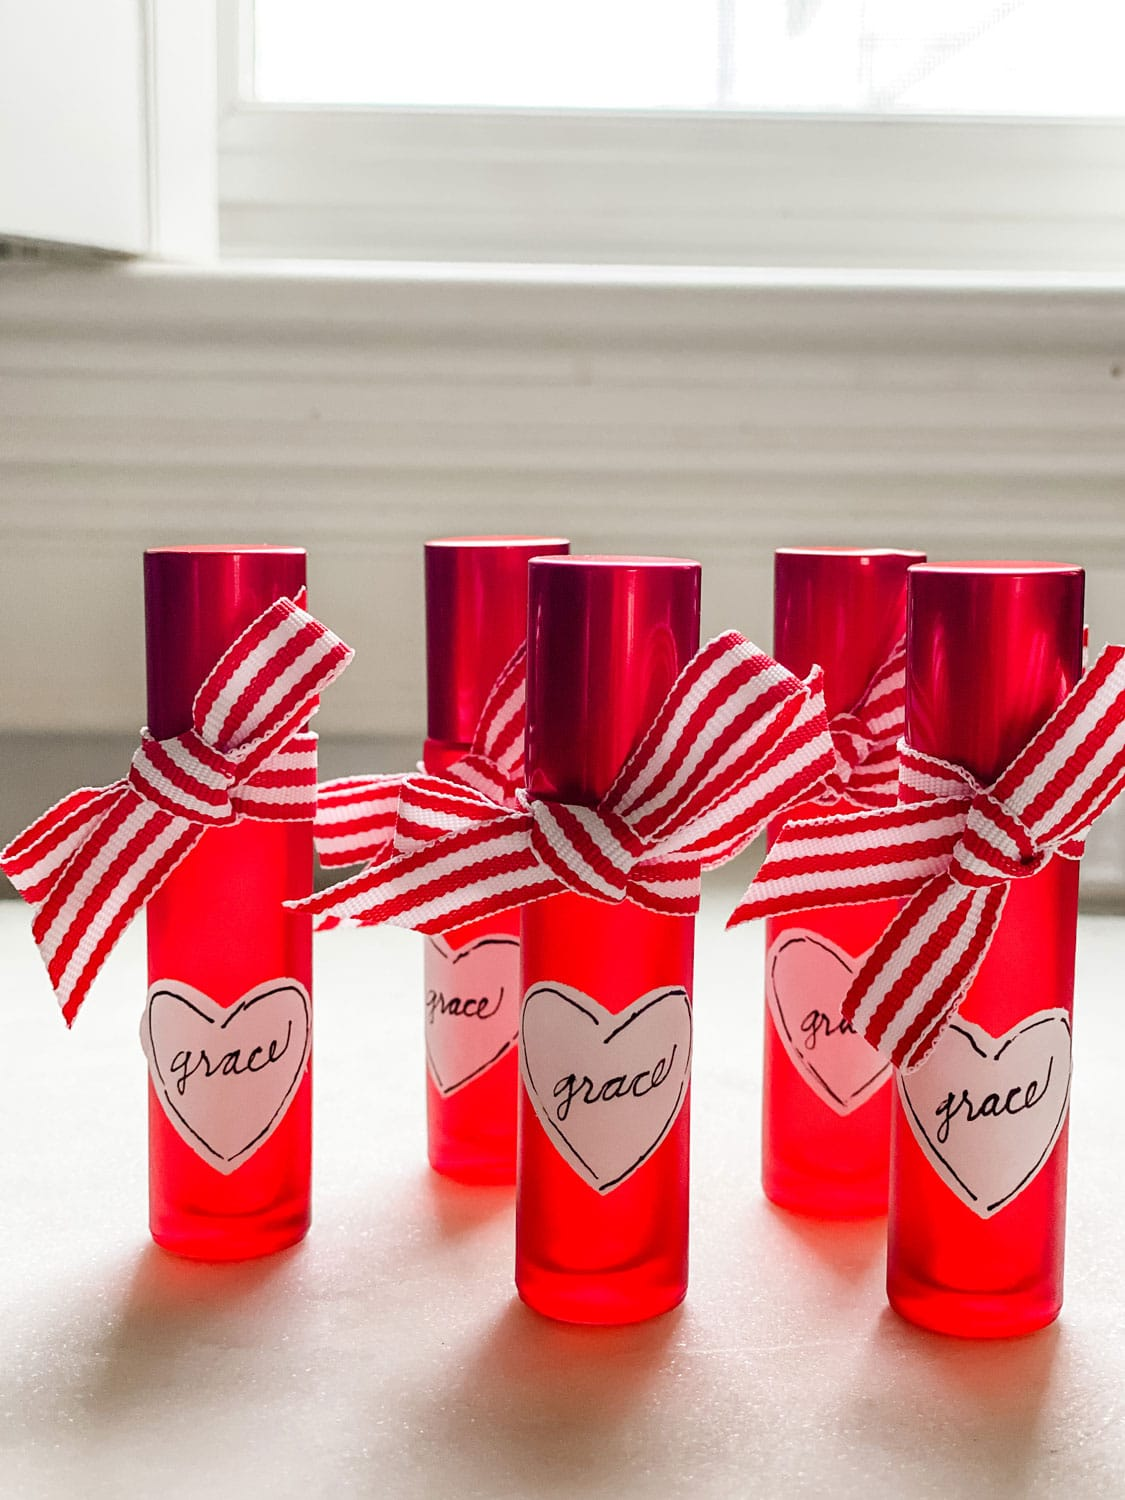 Red roller bottles with ribbon and heart shaped label